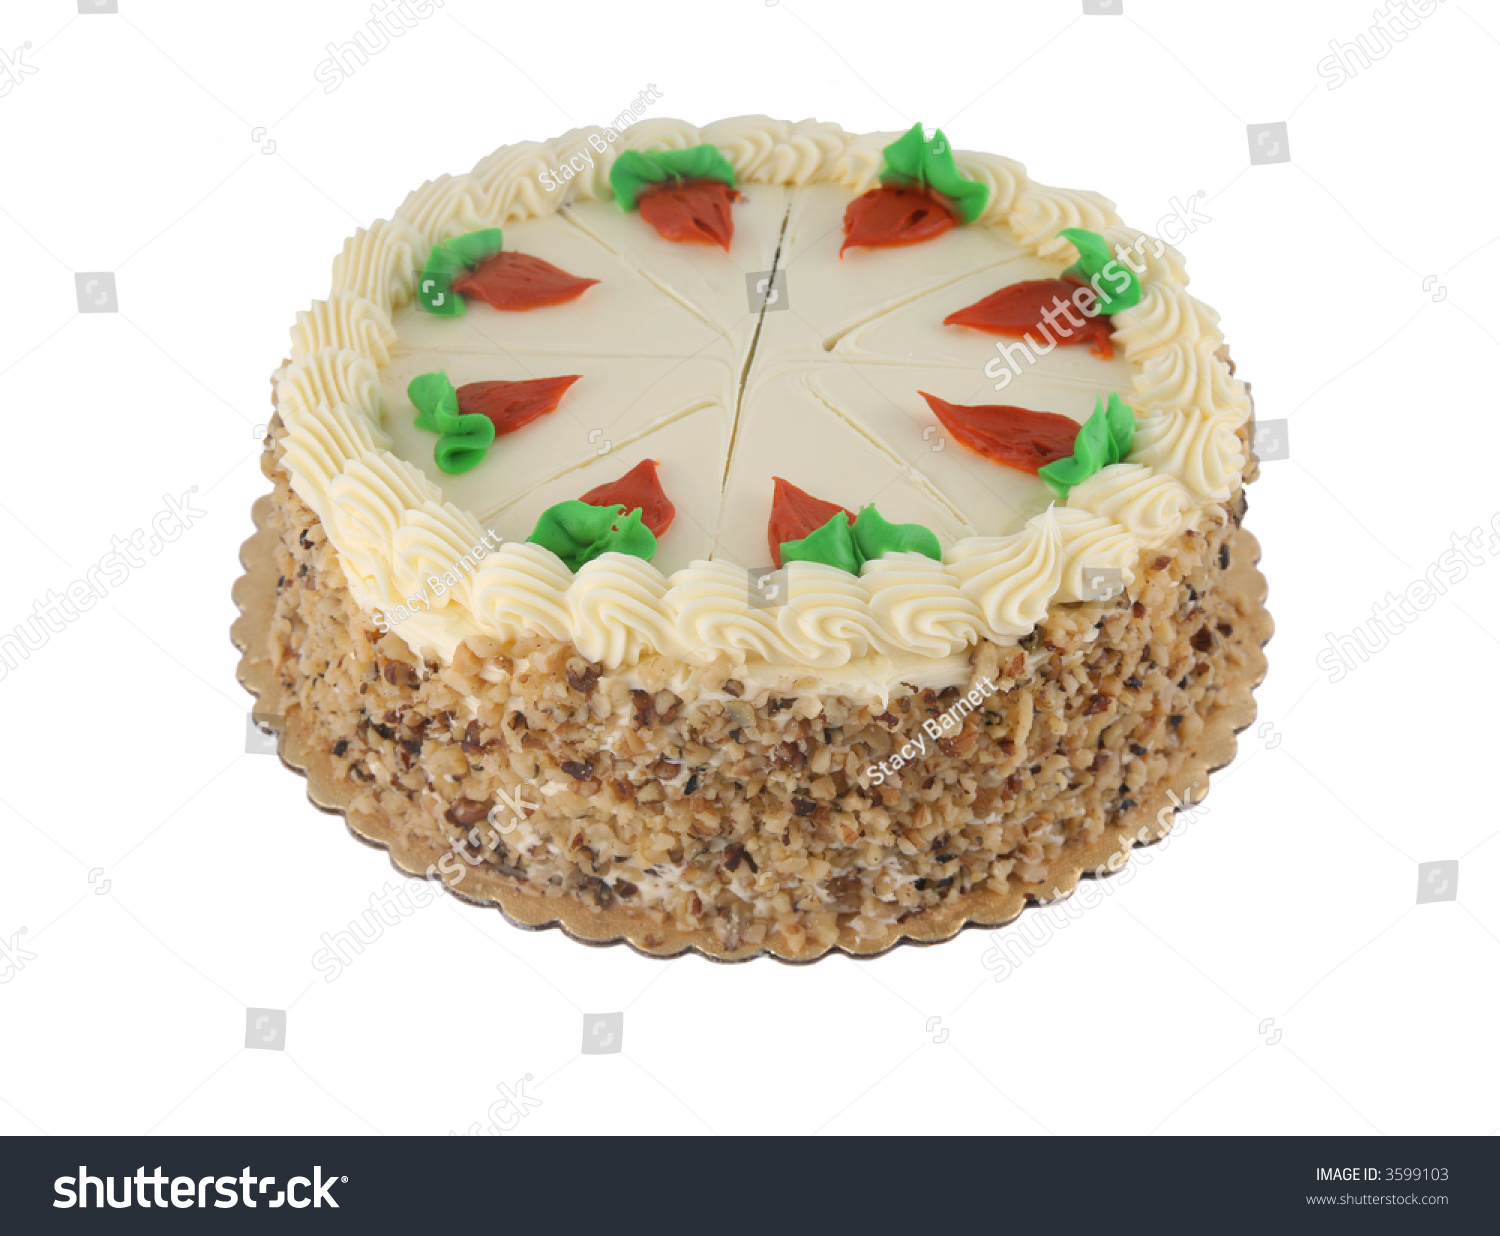 What Icing Would Fit To A Carrot Cake